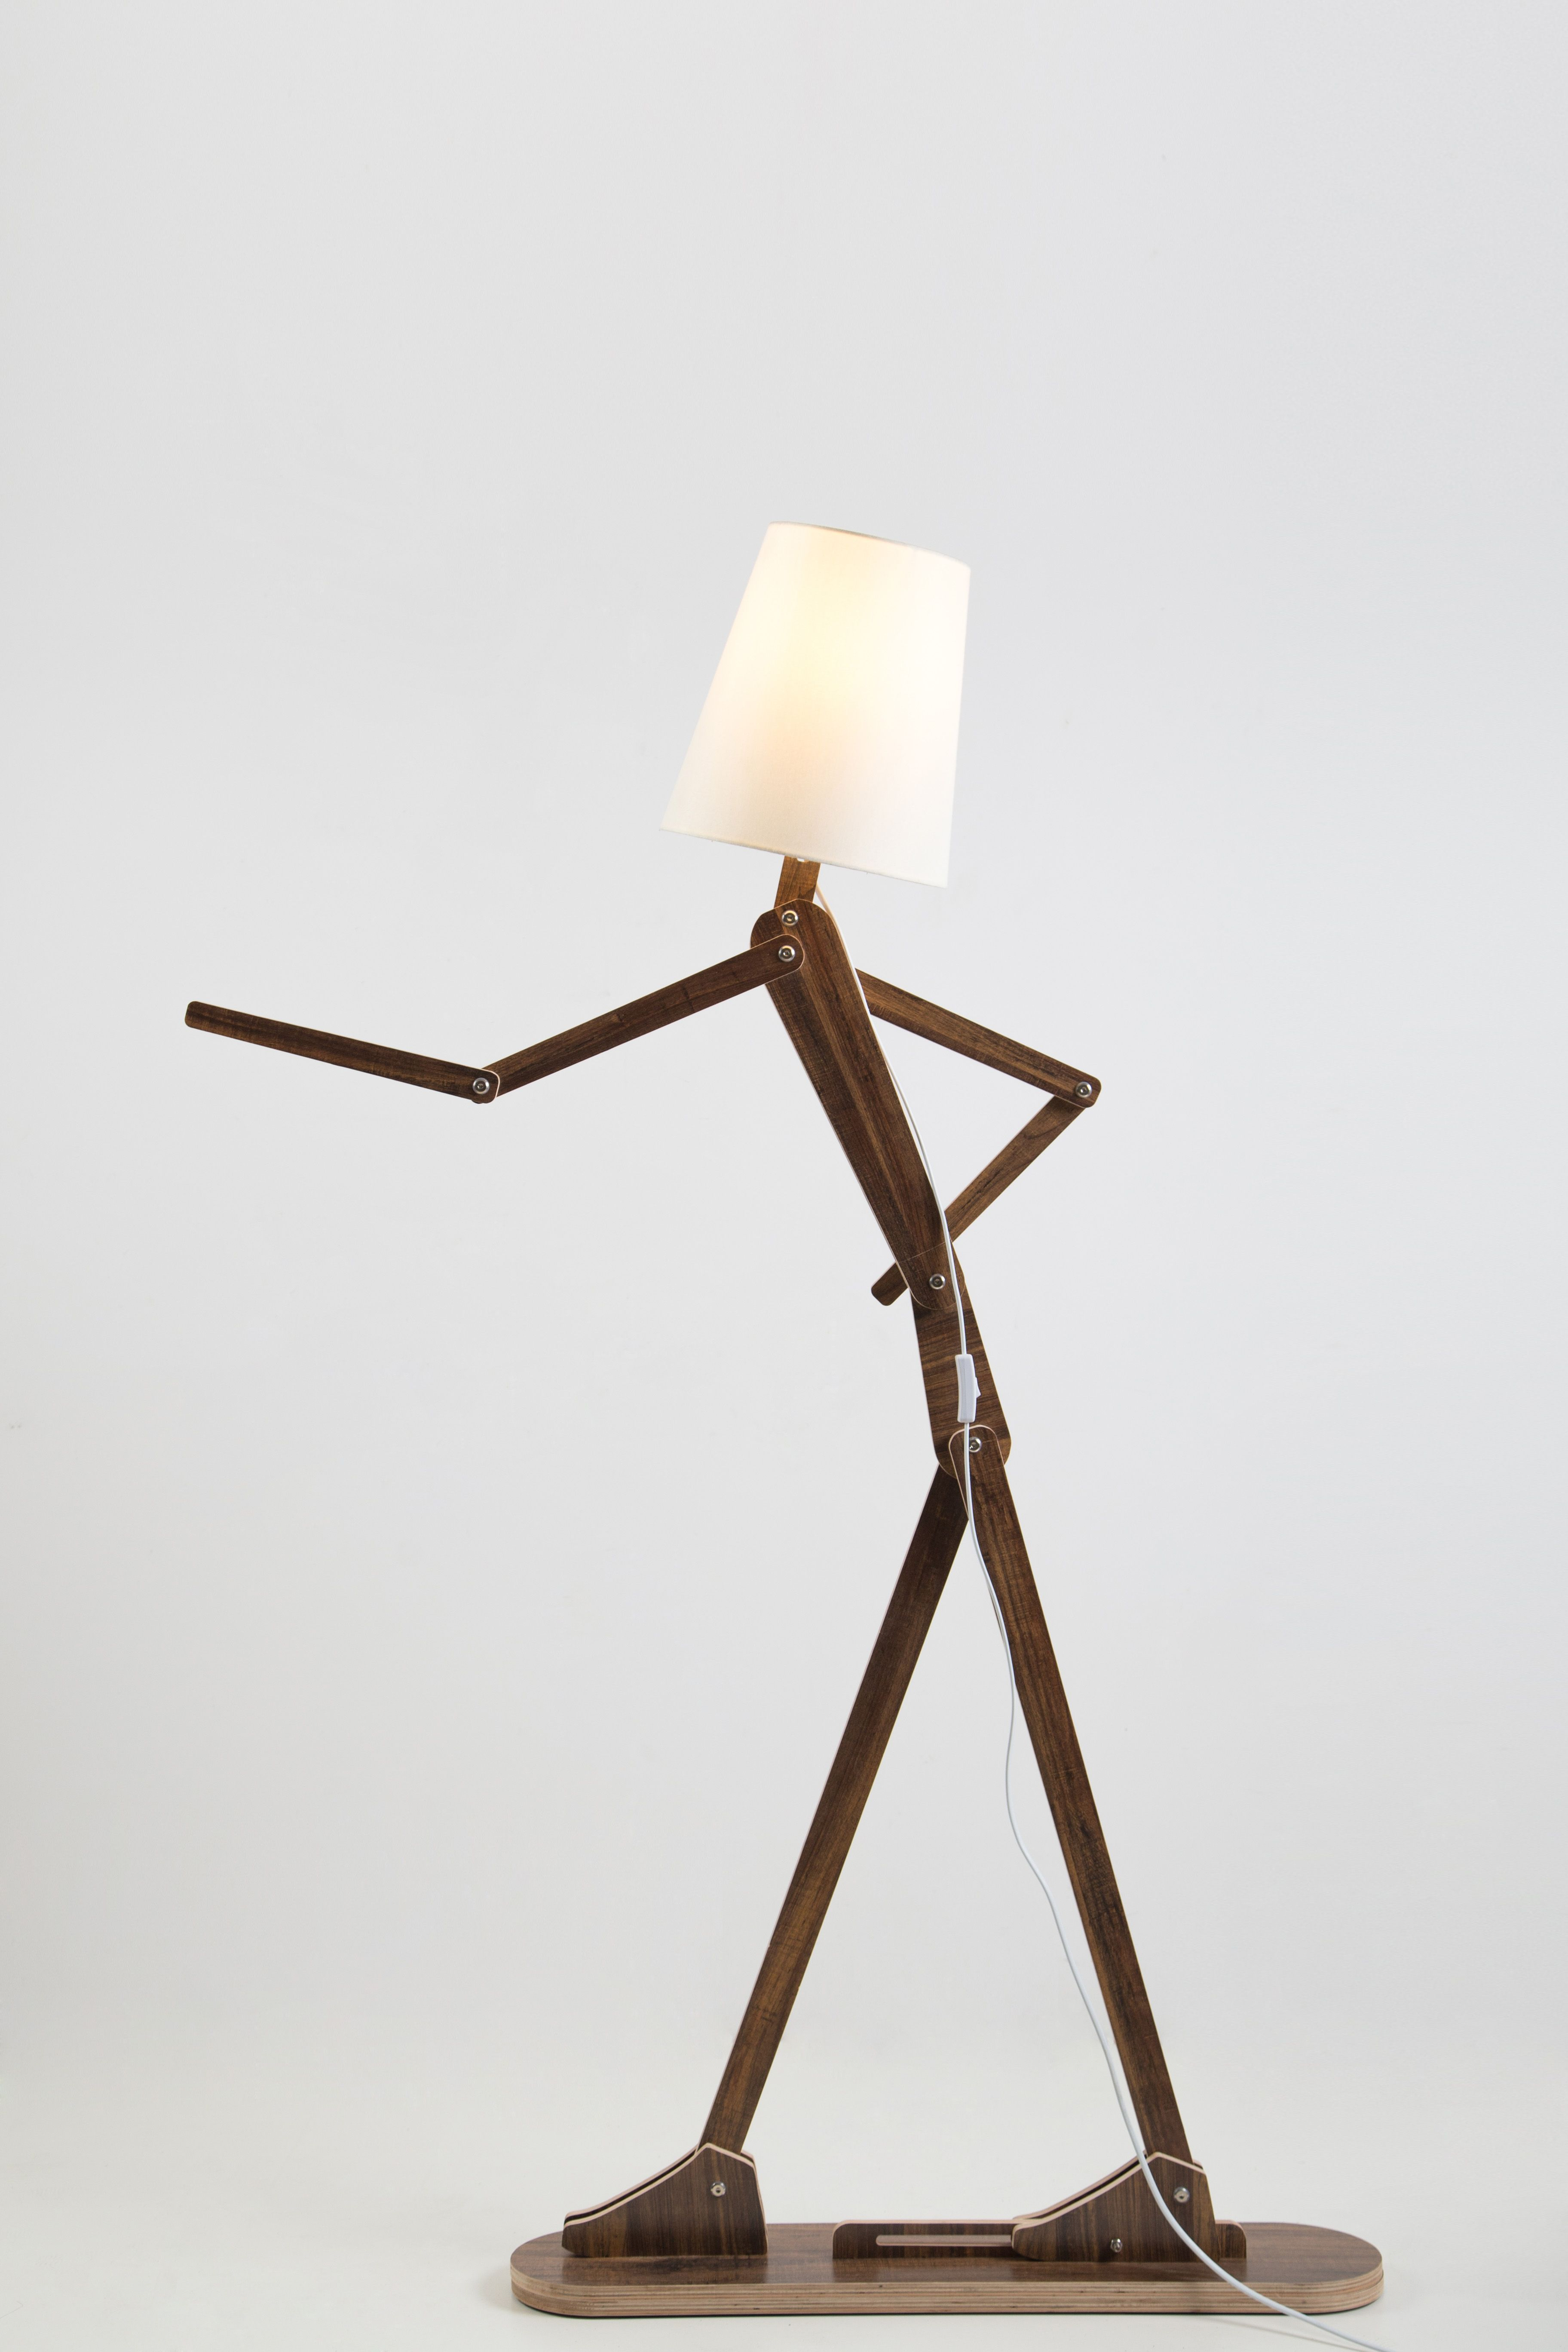 How To Make An Interesting Art Piece Using Tree Branches Ehow Lamp Standard Lamps Home Lighting